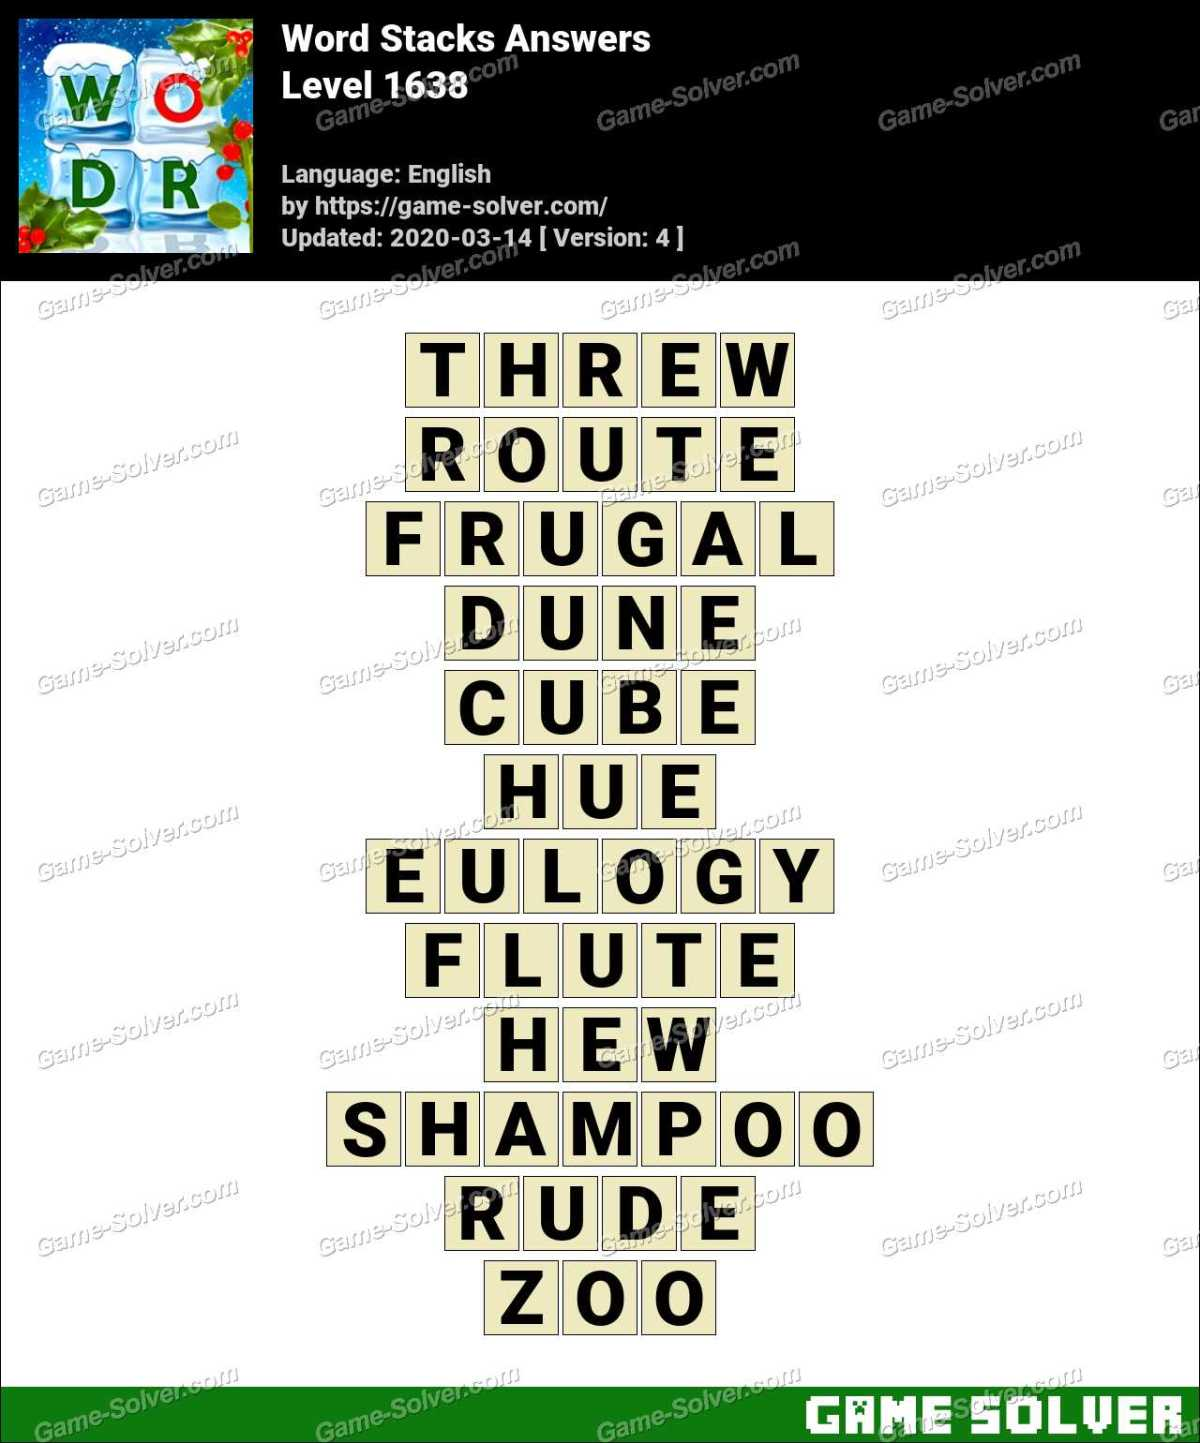 Word Stacks Level 1638 Answers